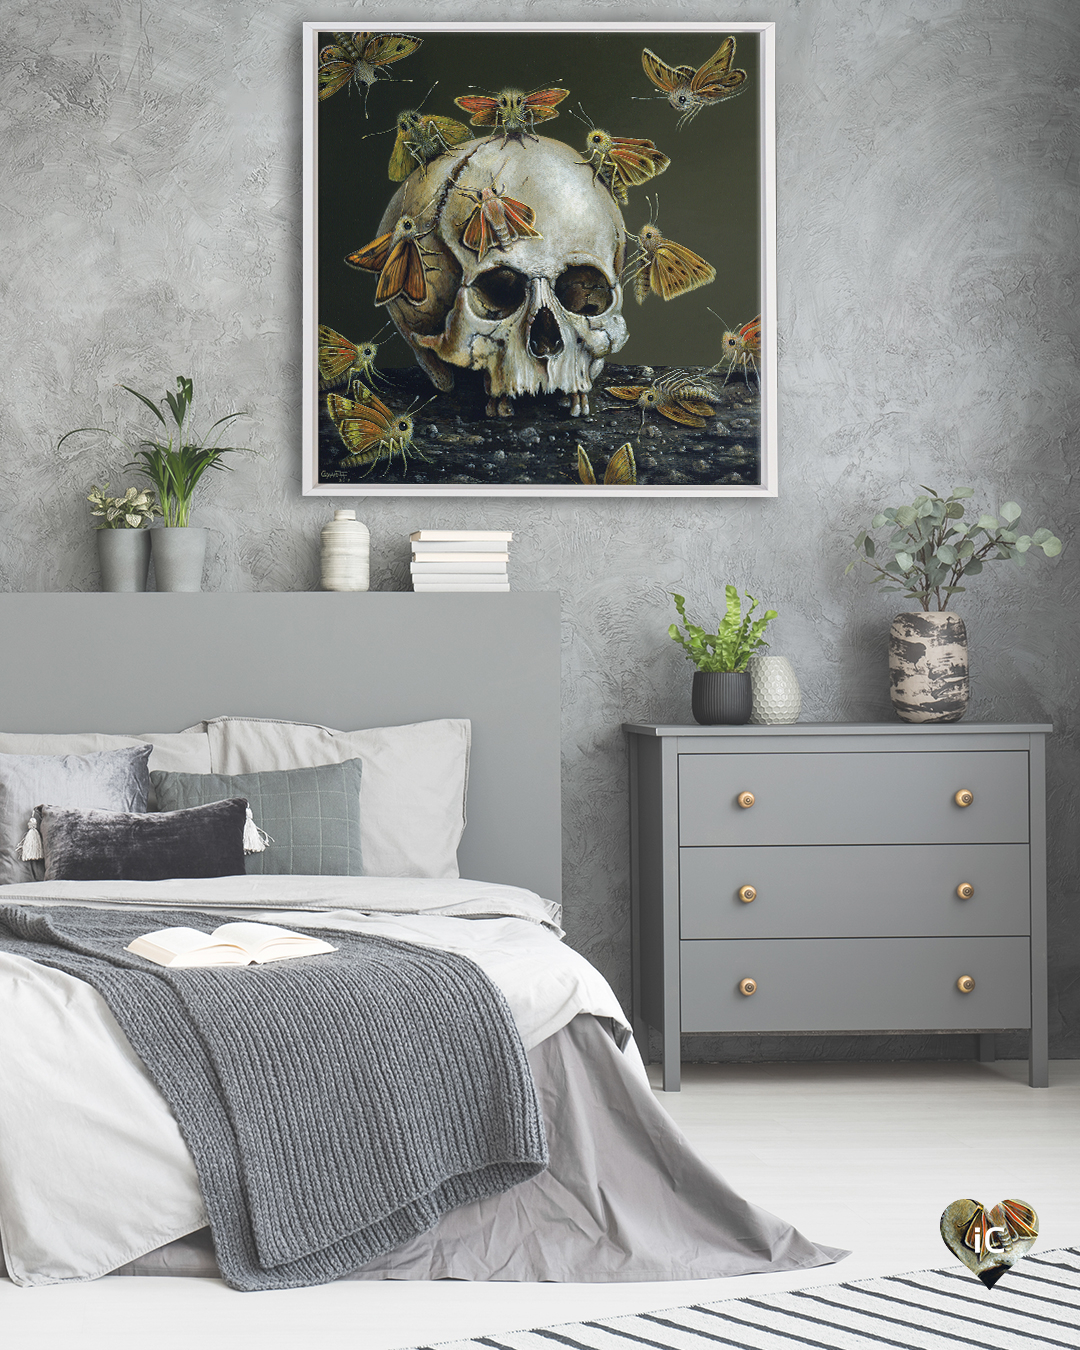 Skull surrounded by butterflies in a white frame on a gray wall in a bedroom with gray decor